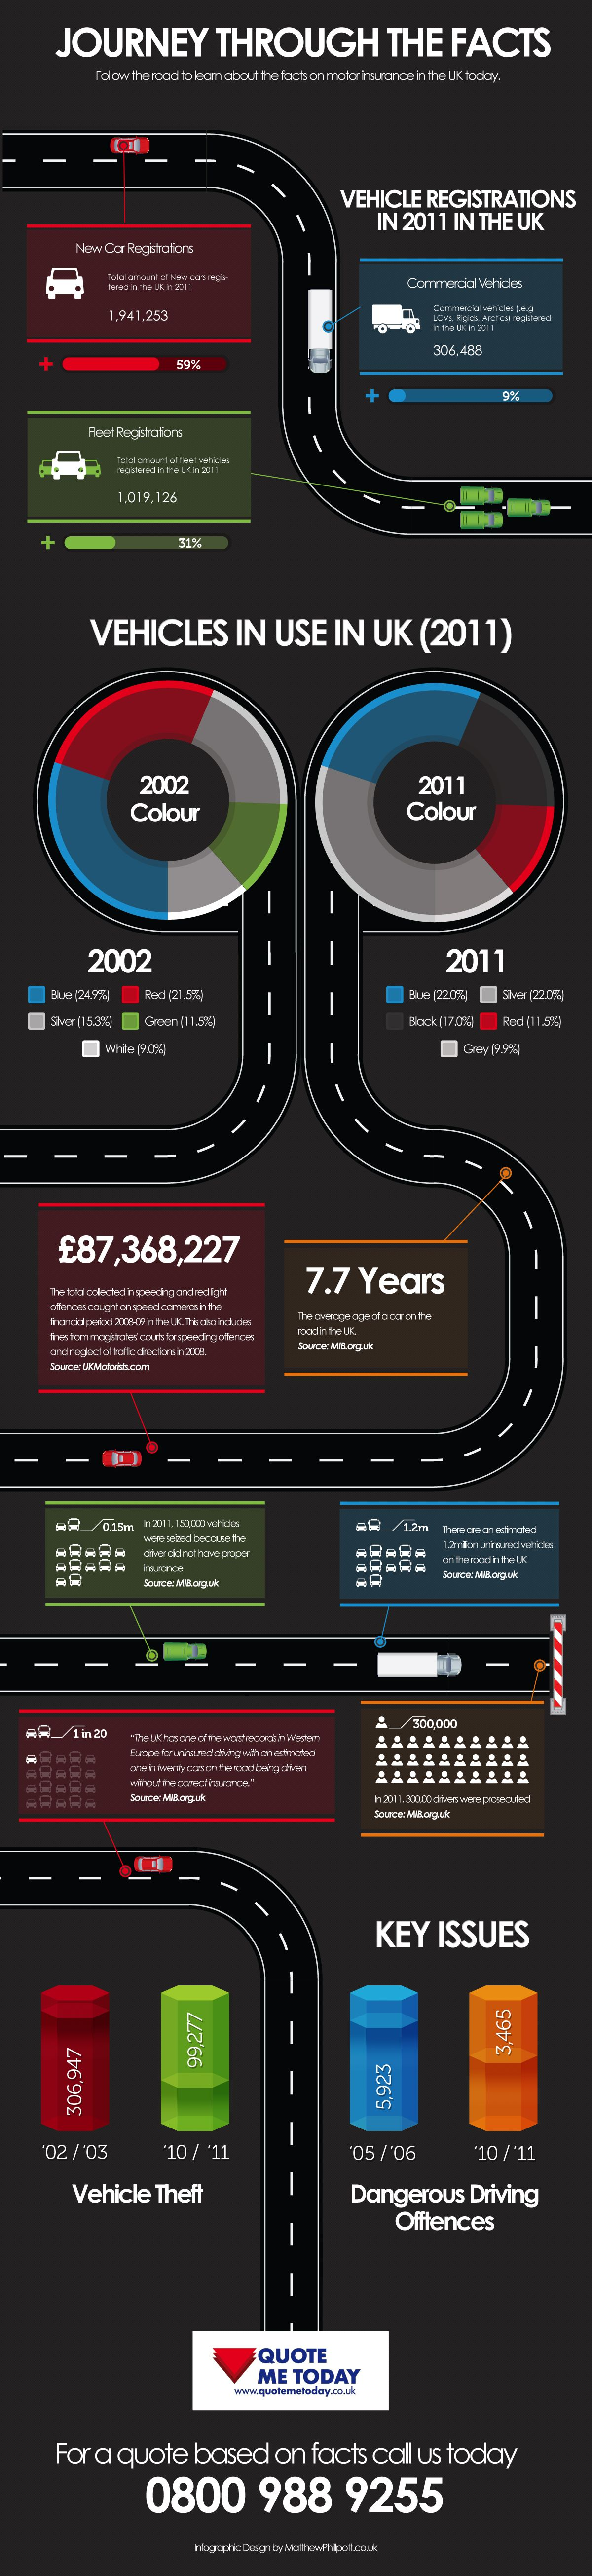 British Automobile Facts With Images Infographic Car